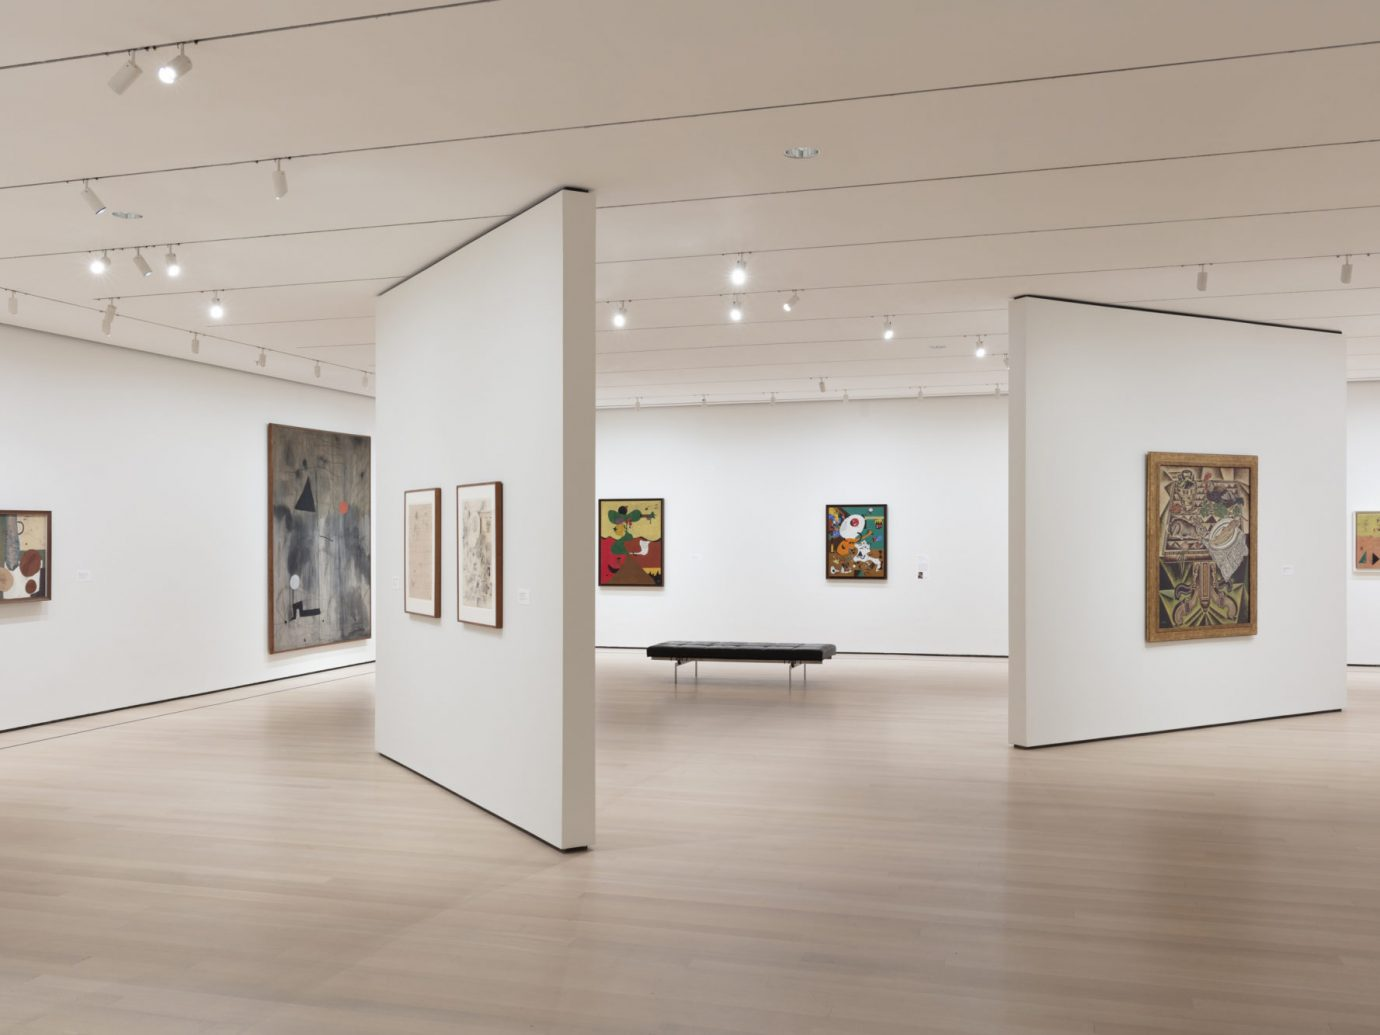 Installation view of Joan Miró: Birth of the World, The Museum of Modern Art, New York, February 24–June 15, 2019. © 2019 The Museum of Modern Art. Photo: Denis Doorly